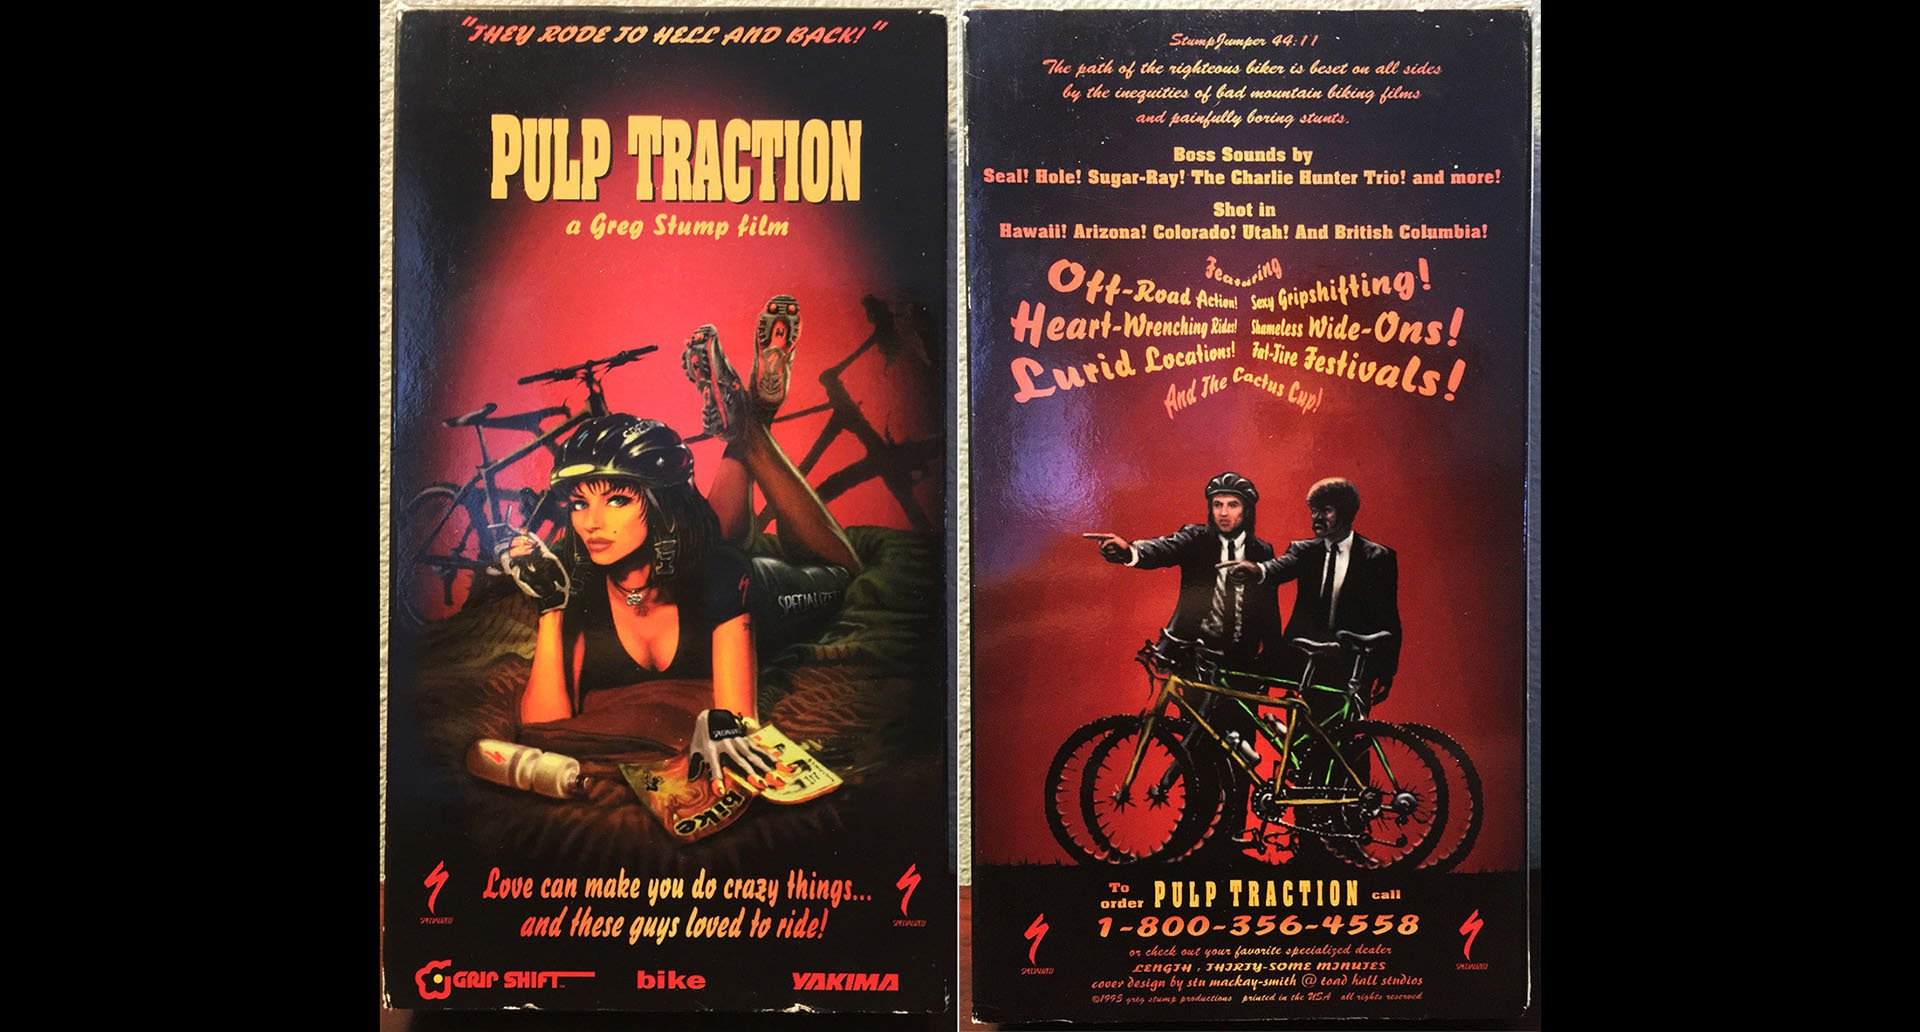 Pulp Traction